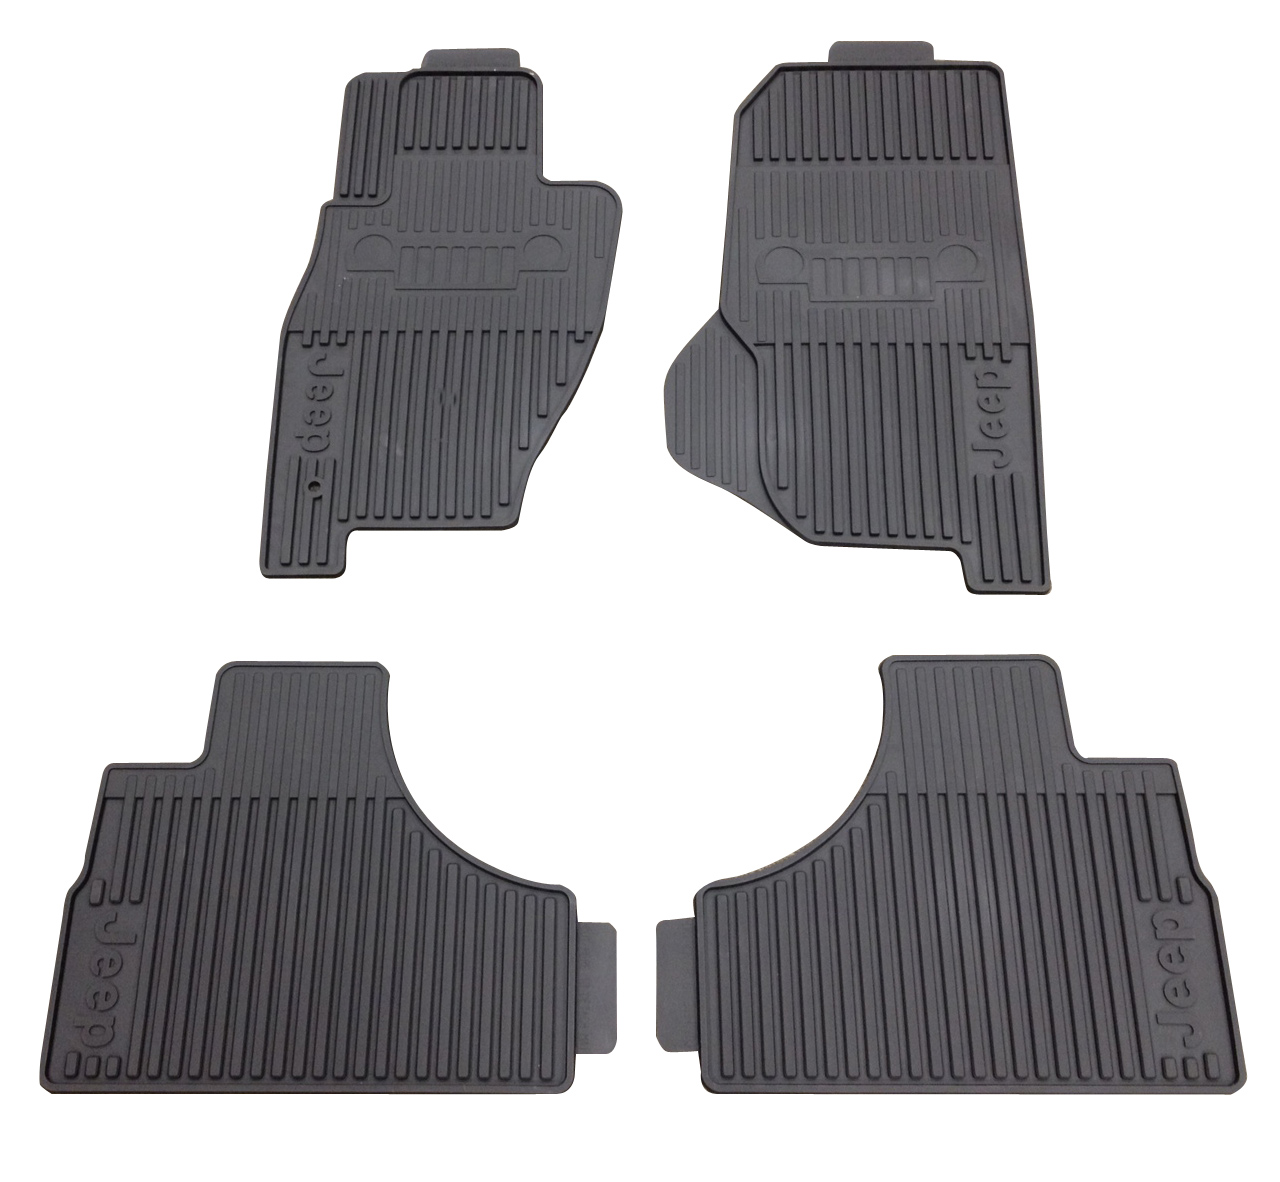 unlimited all custom floor slush grand mats full mopar of com automotive jeep wrangler amazon weather liberty size striking black image mat design cherokee